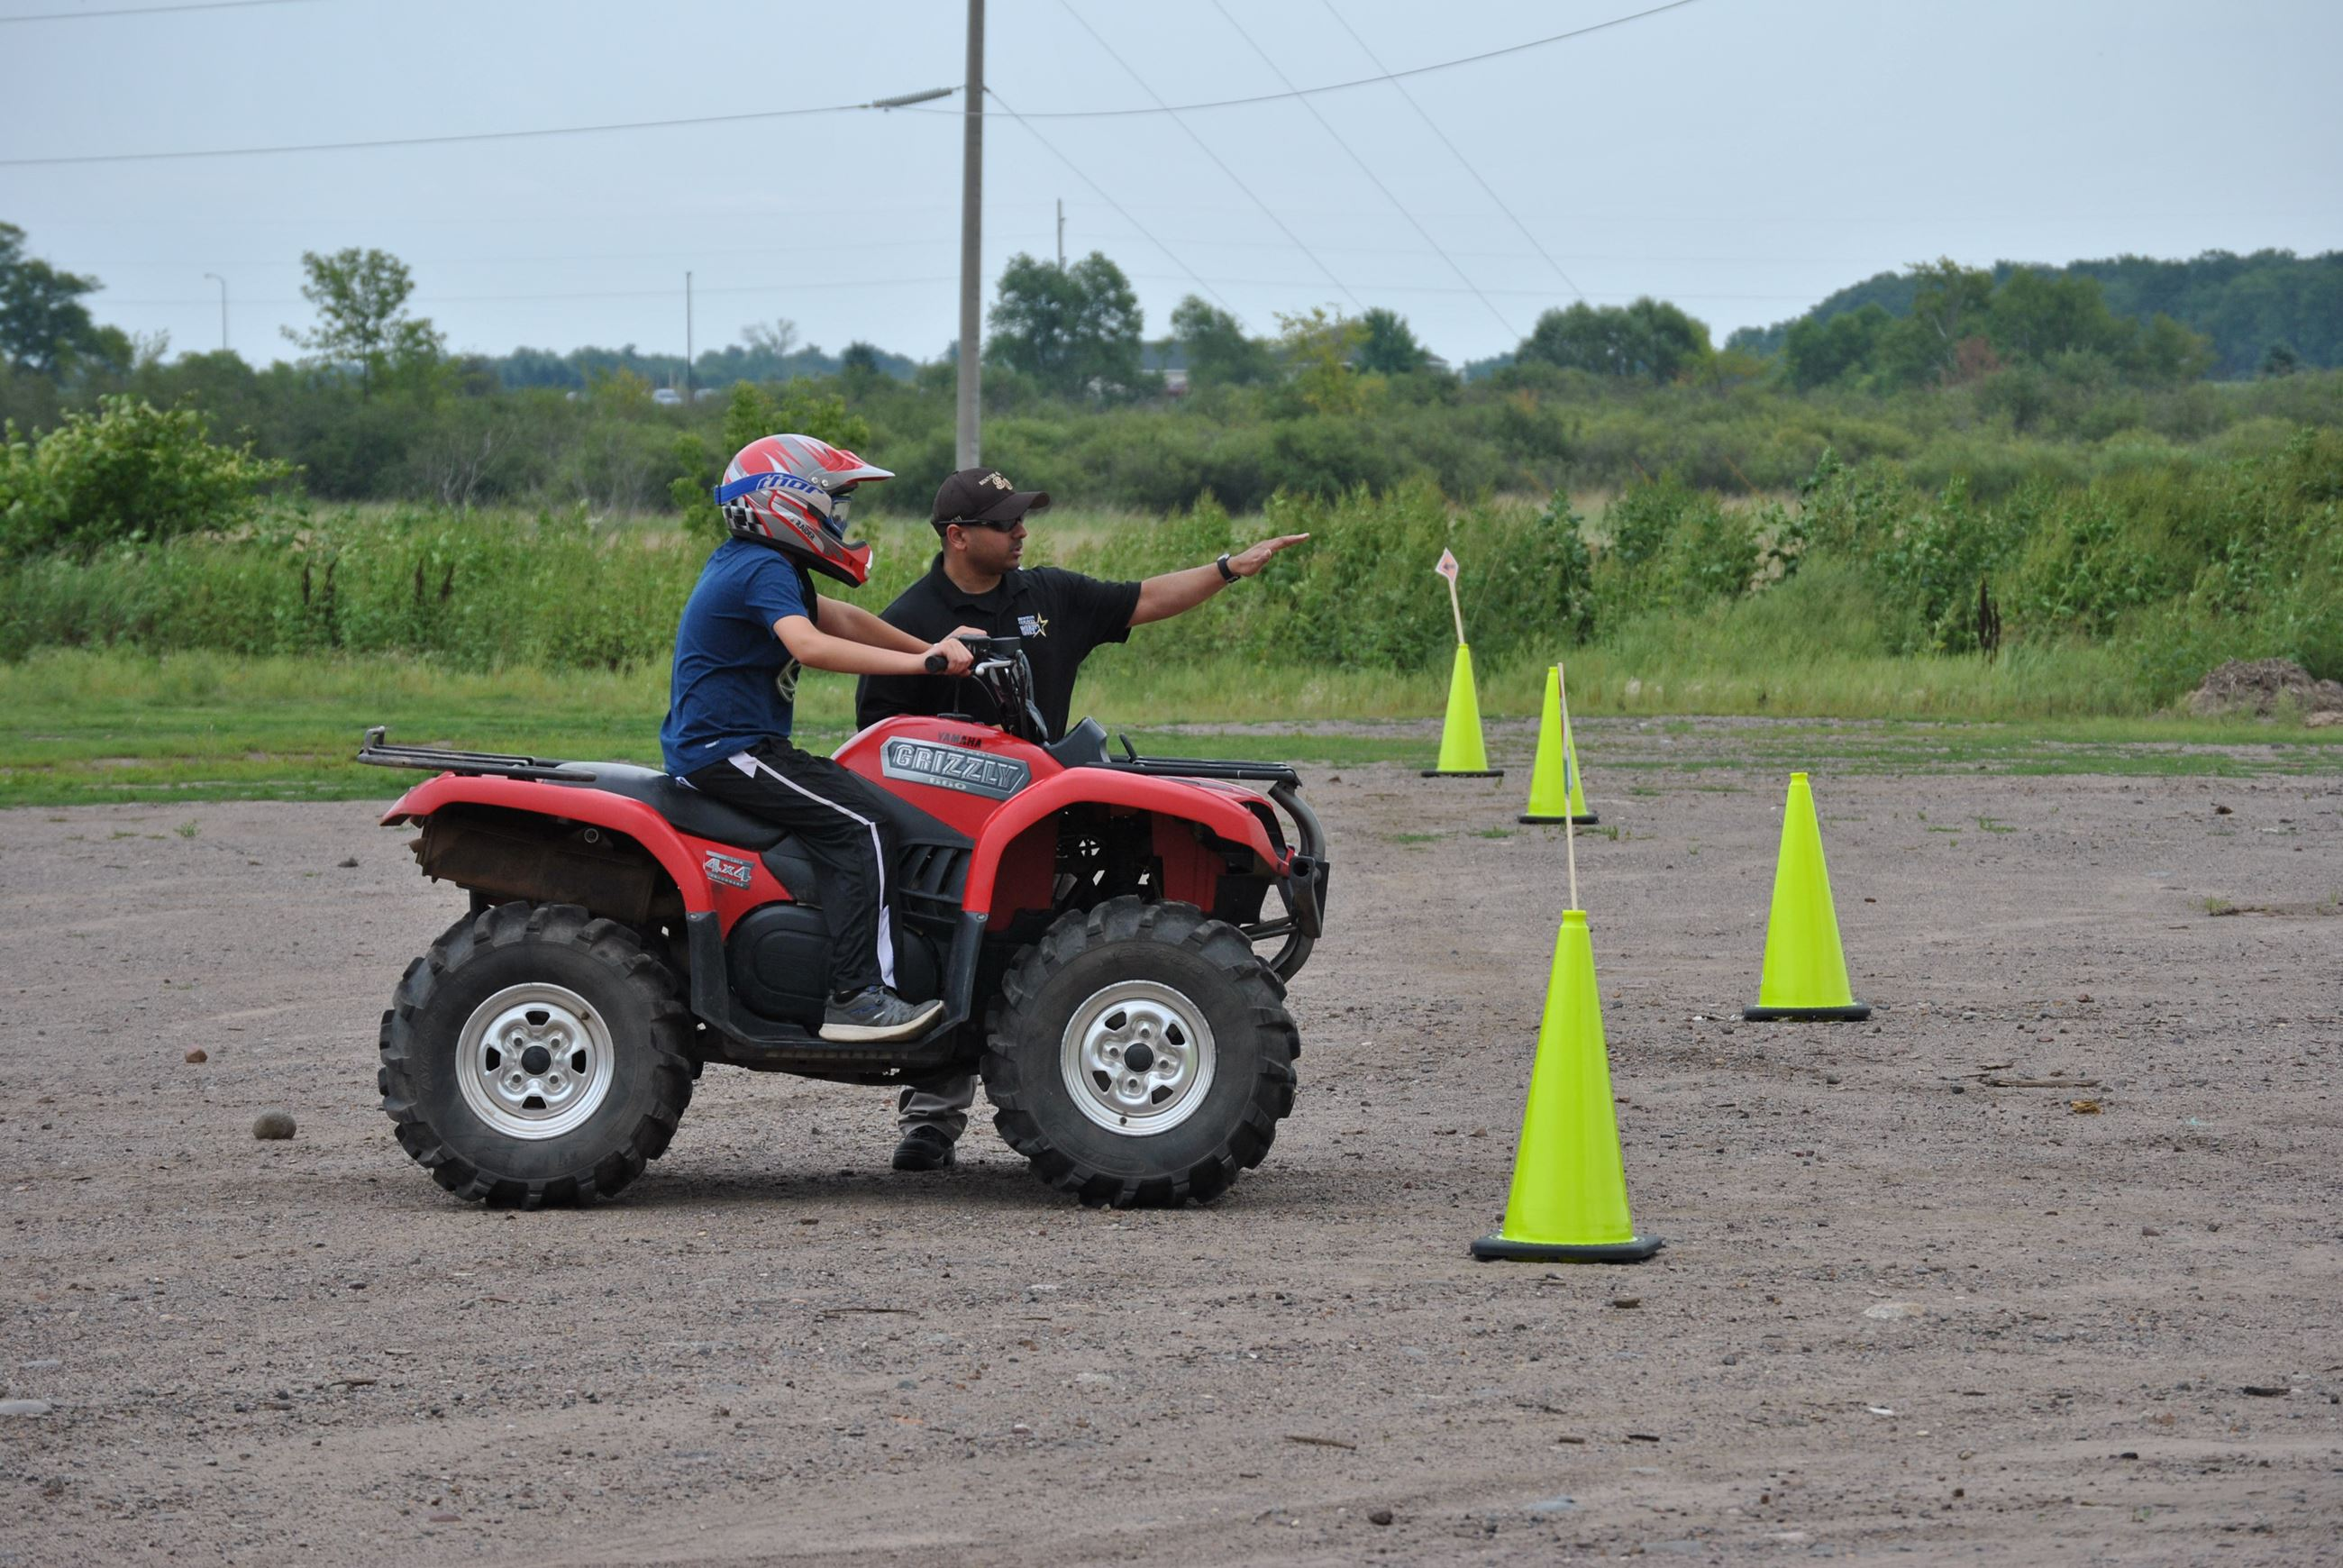 Deputy directing youth on ATV